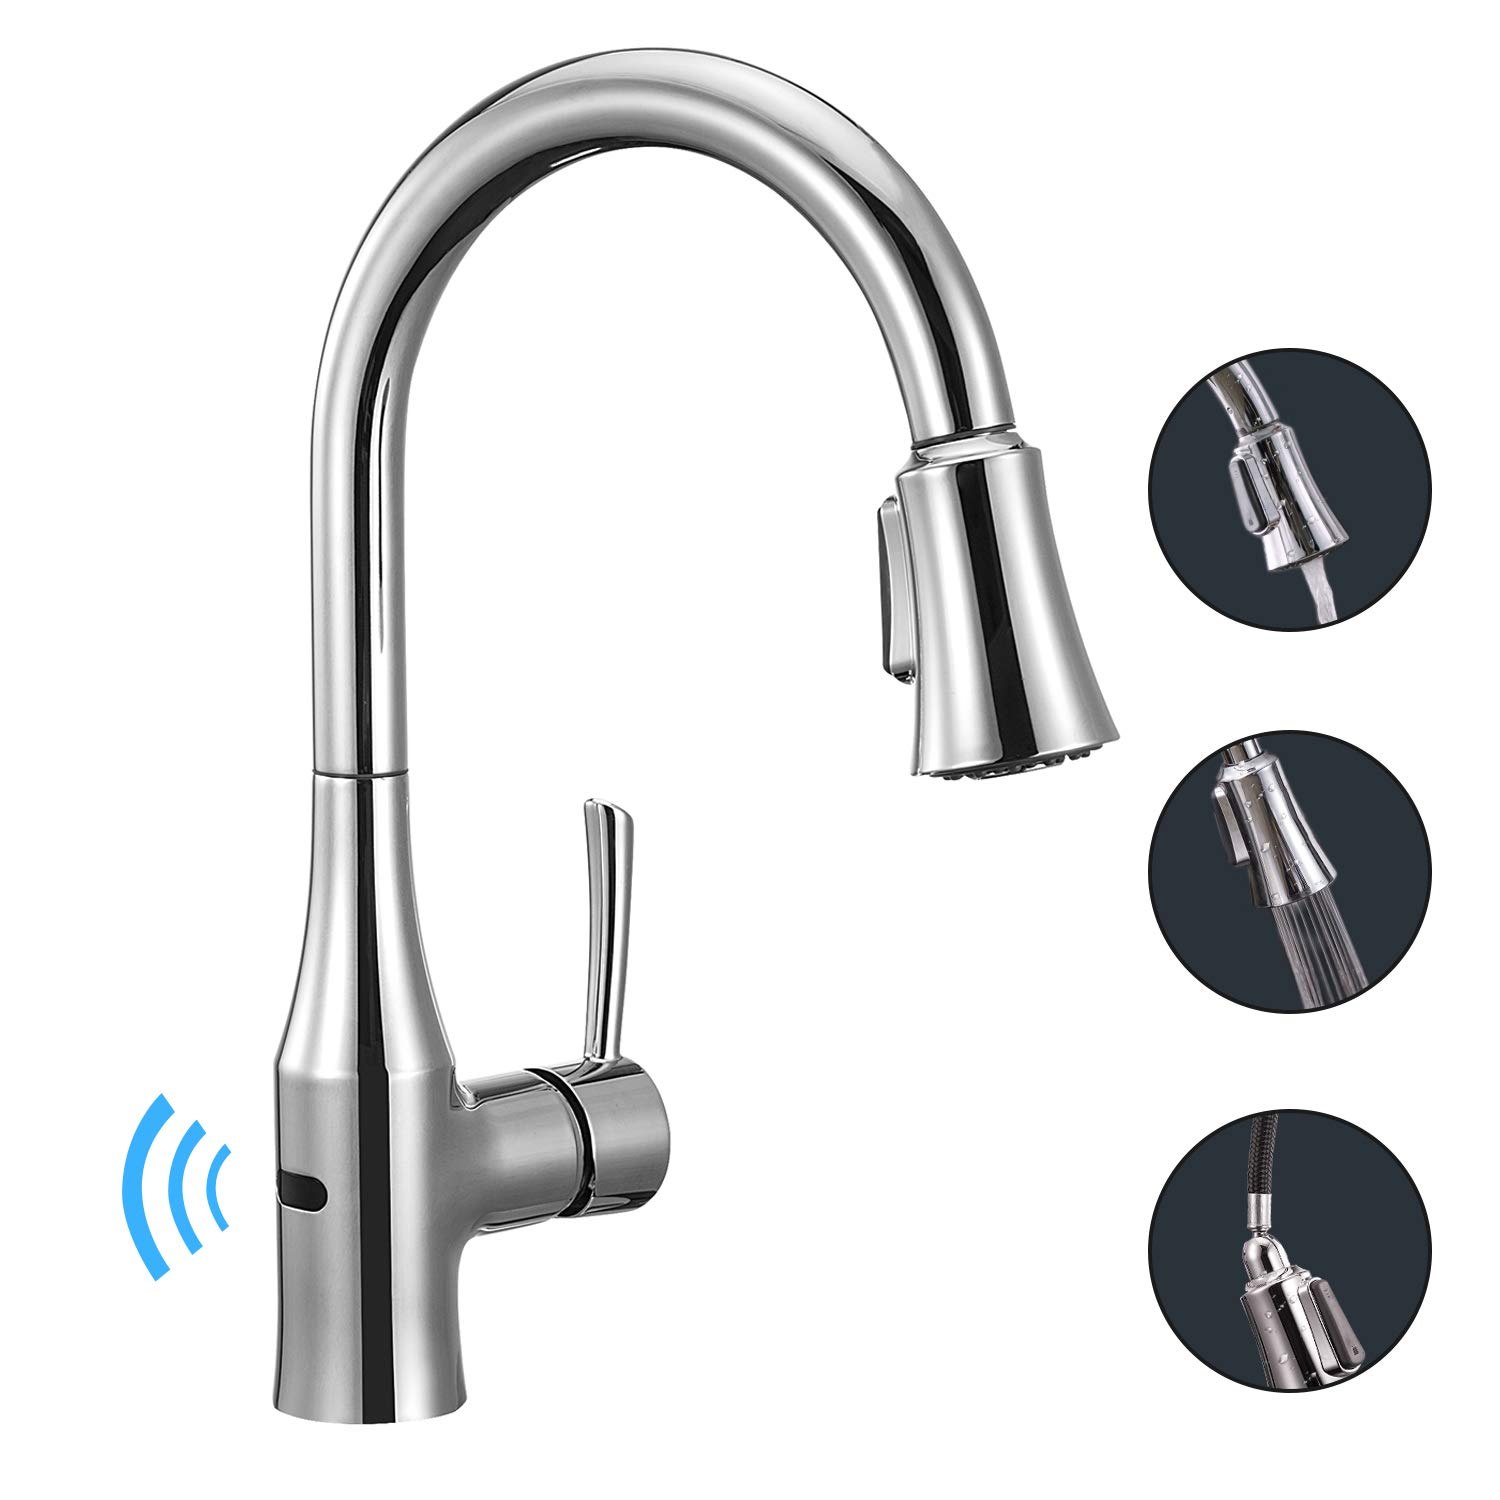 8. Anza Touchless Wave Touchless Faucet